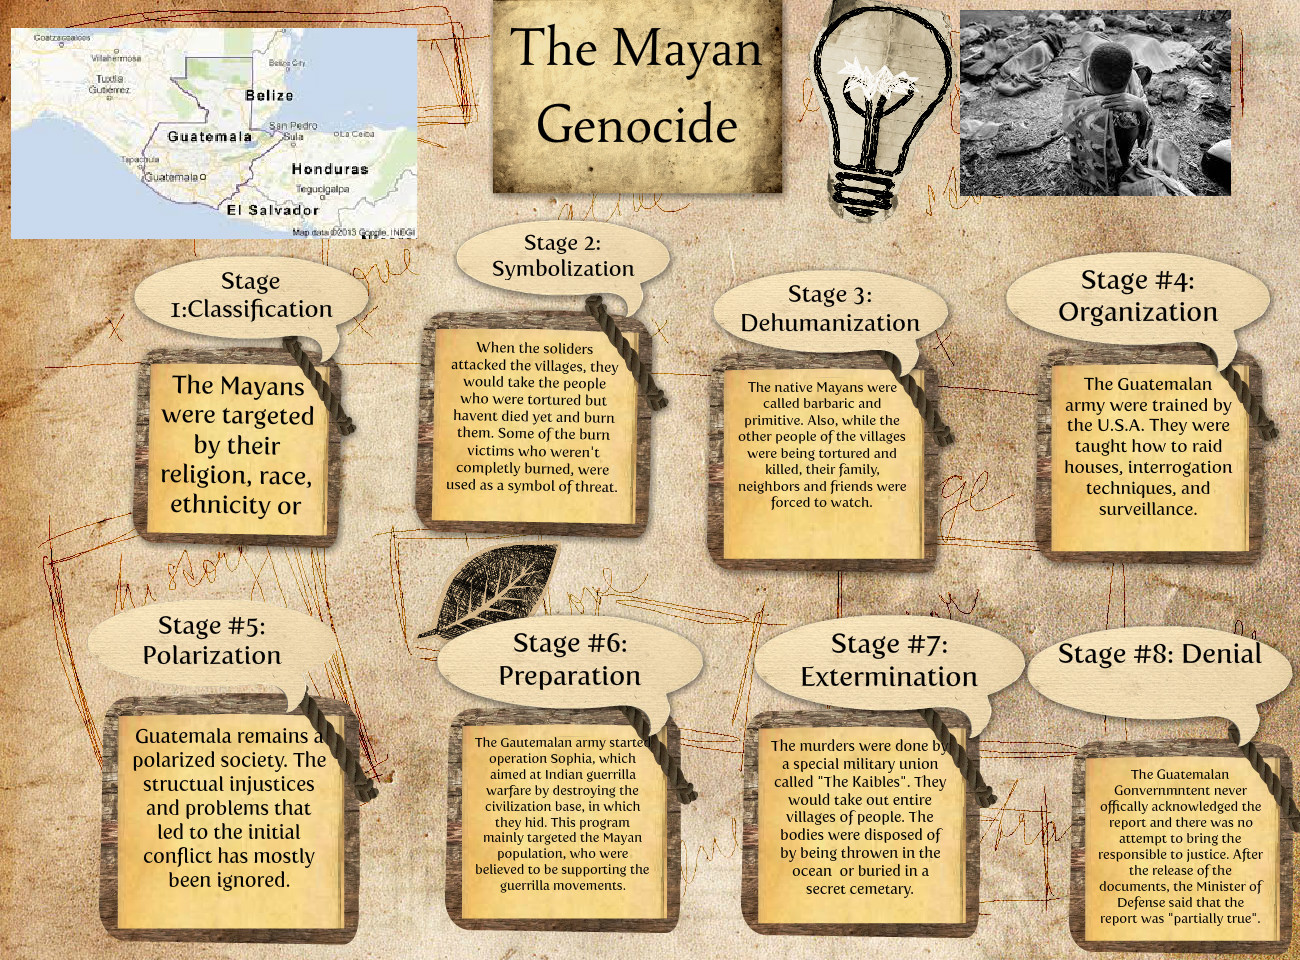 The Mayan Genocide